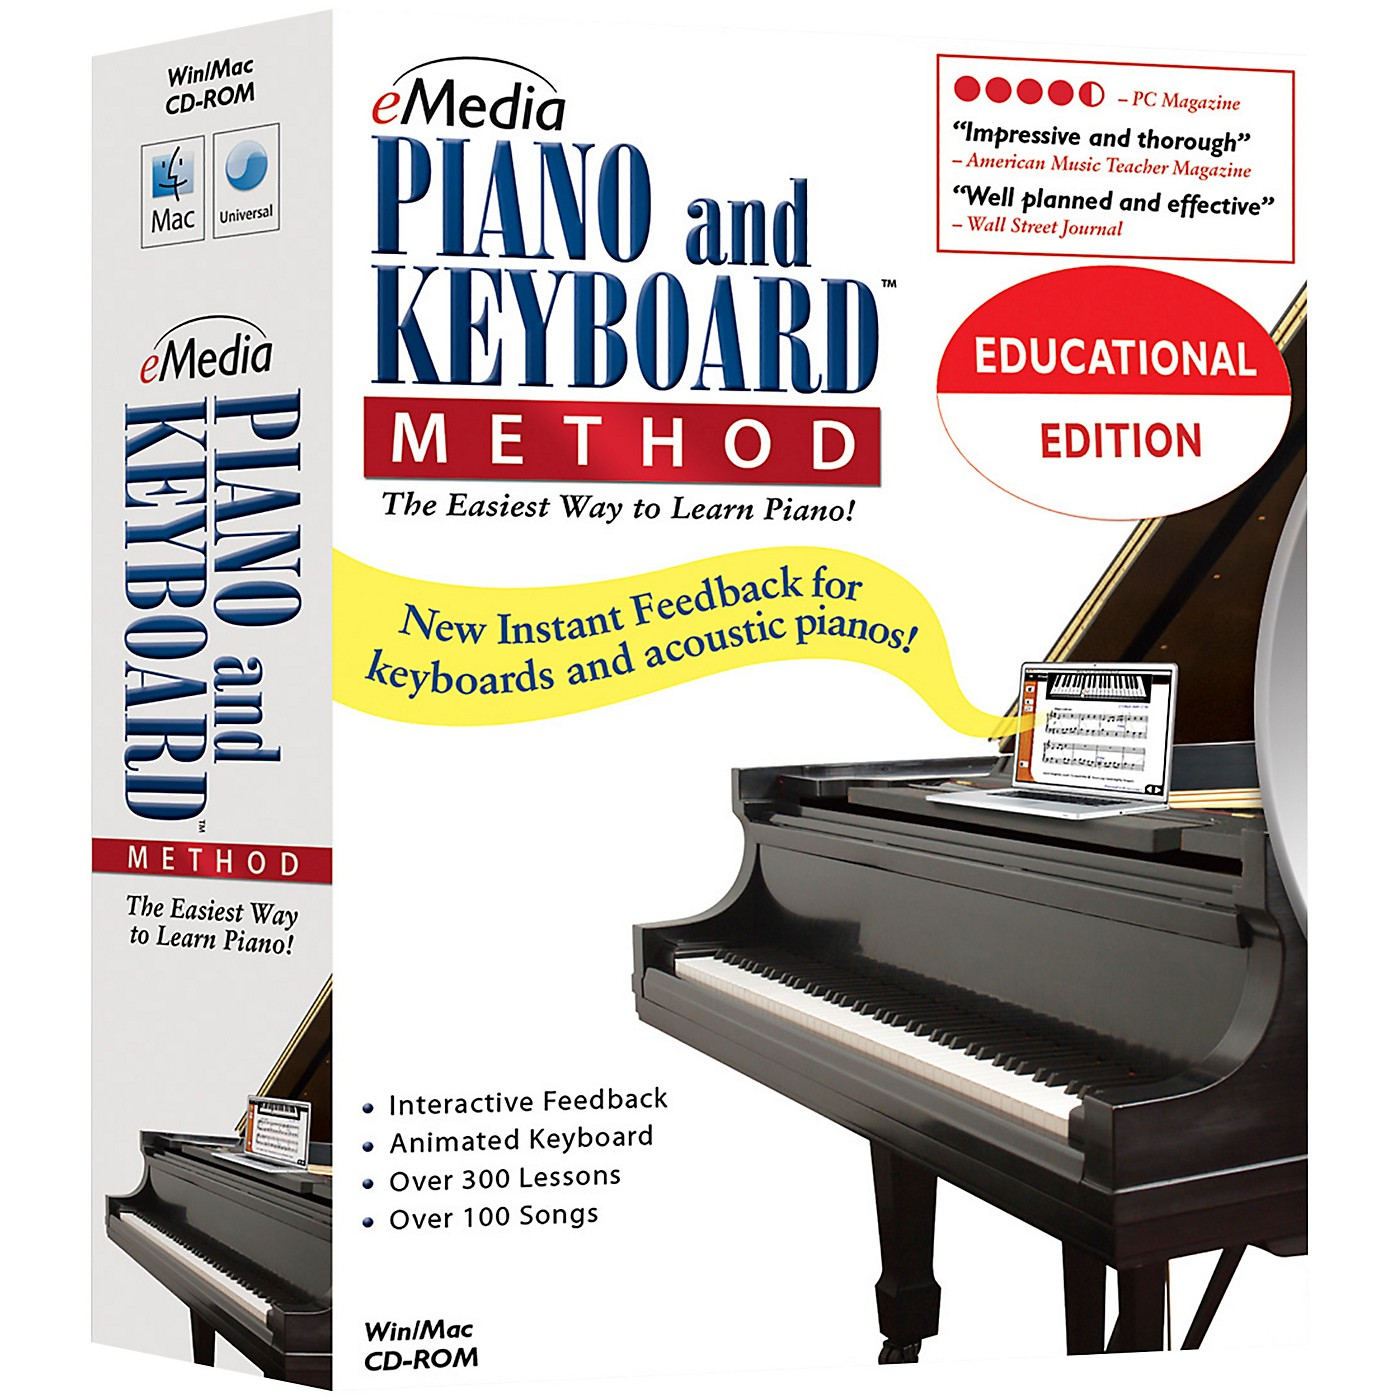 eMedia Piano and Keyboard Method 10 Station Lab Pack (10 Computers/120 Students Ea) thumbnail